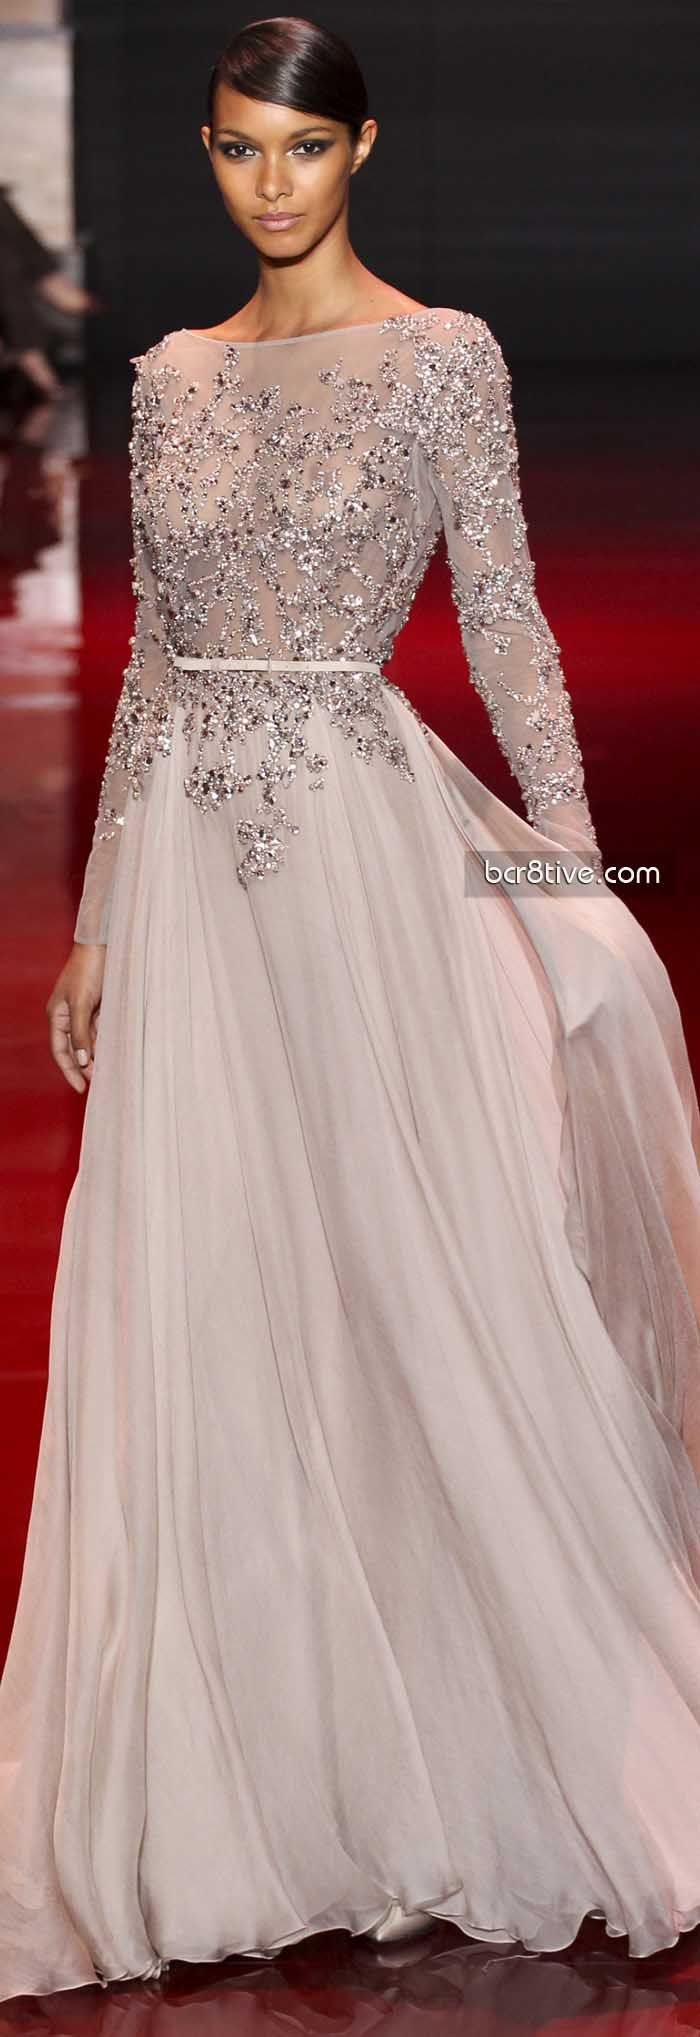 Elie Saab FW 2014 Haute Couture An evening in this gown would make me feel like Cinderella :)